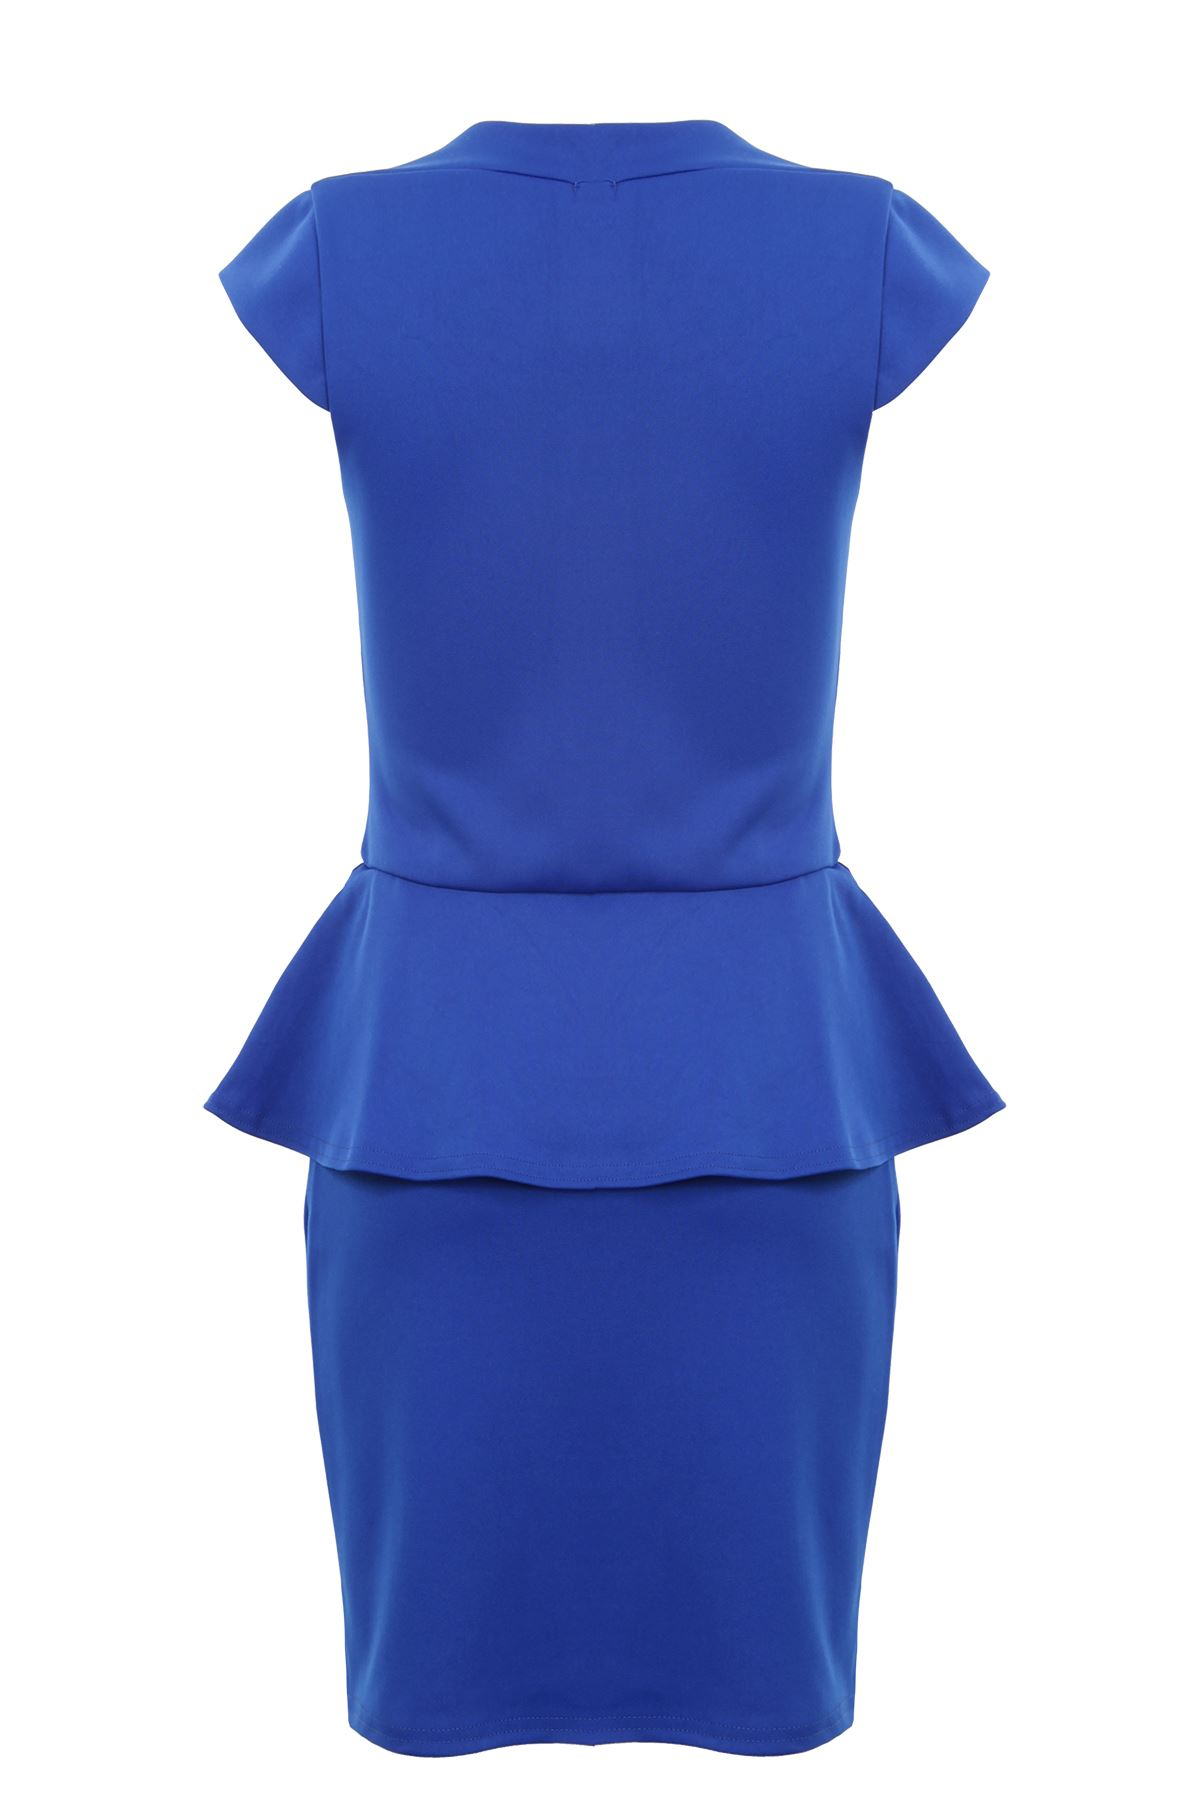 You have size preferences associated with your profile. Peplum Dress Dresses. Filter; Sort By All Items (4) Sale $ Free ship at $ Enjoy Free Shipping at $49! See exclusions. Free ship at $49 (1) more like this. Connected Petite Belted Jacquard Peplum Dress.